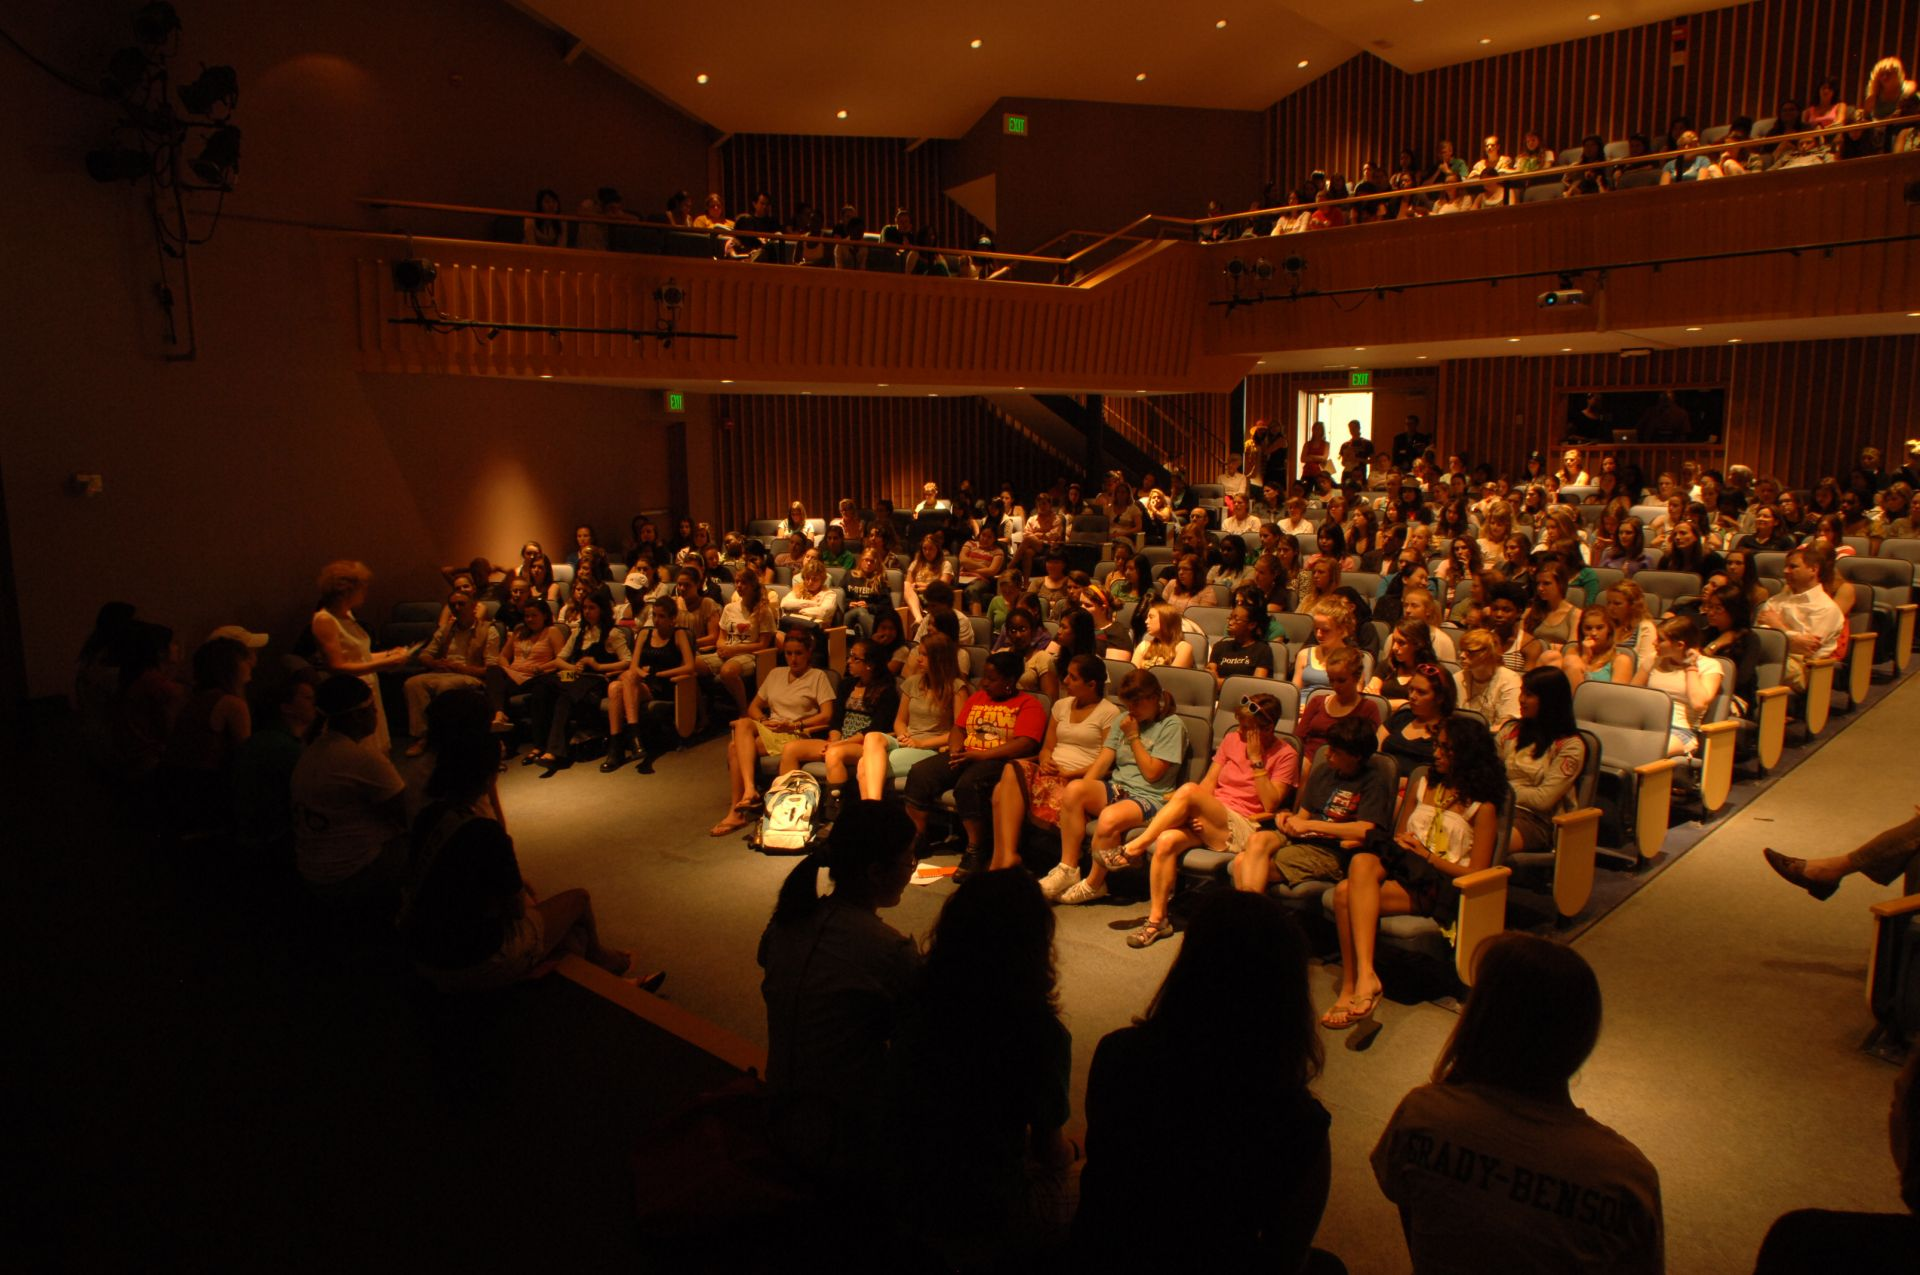 Interior of Hacker Theater during morning meeting